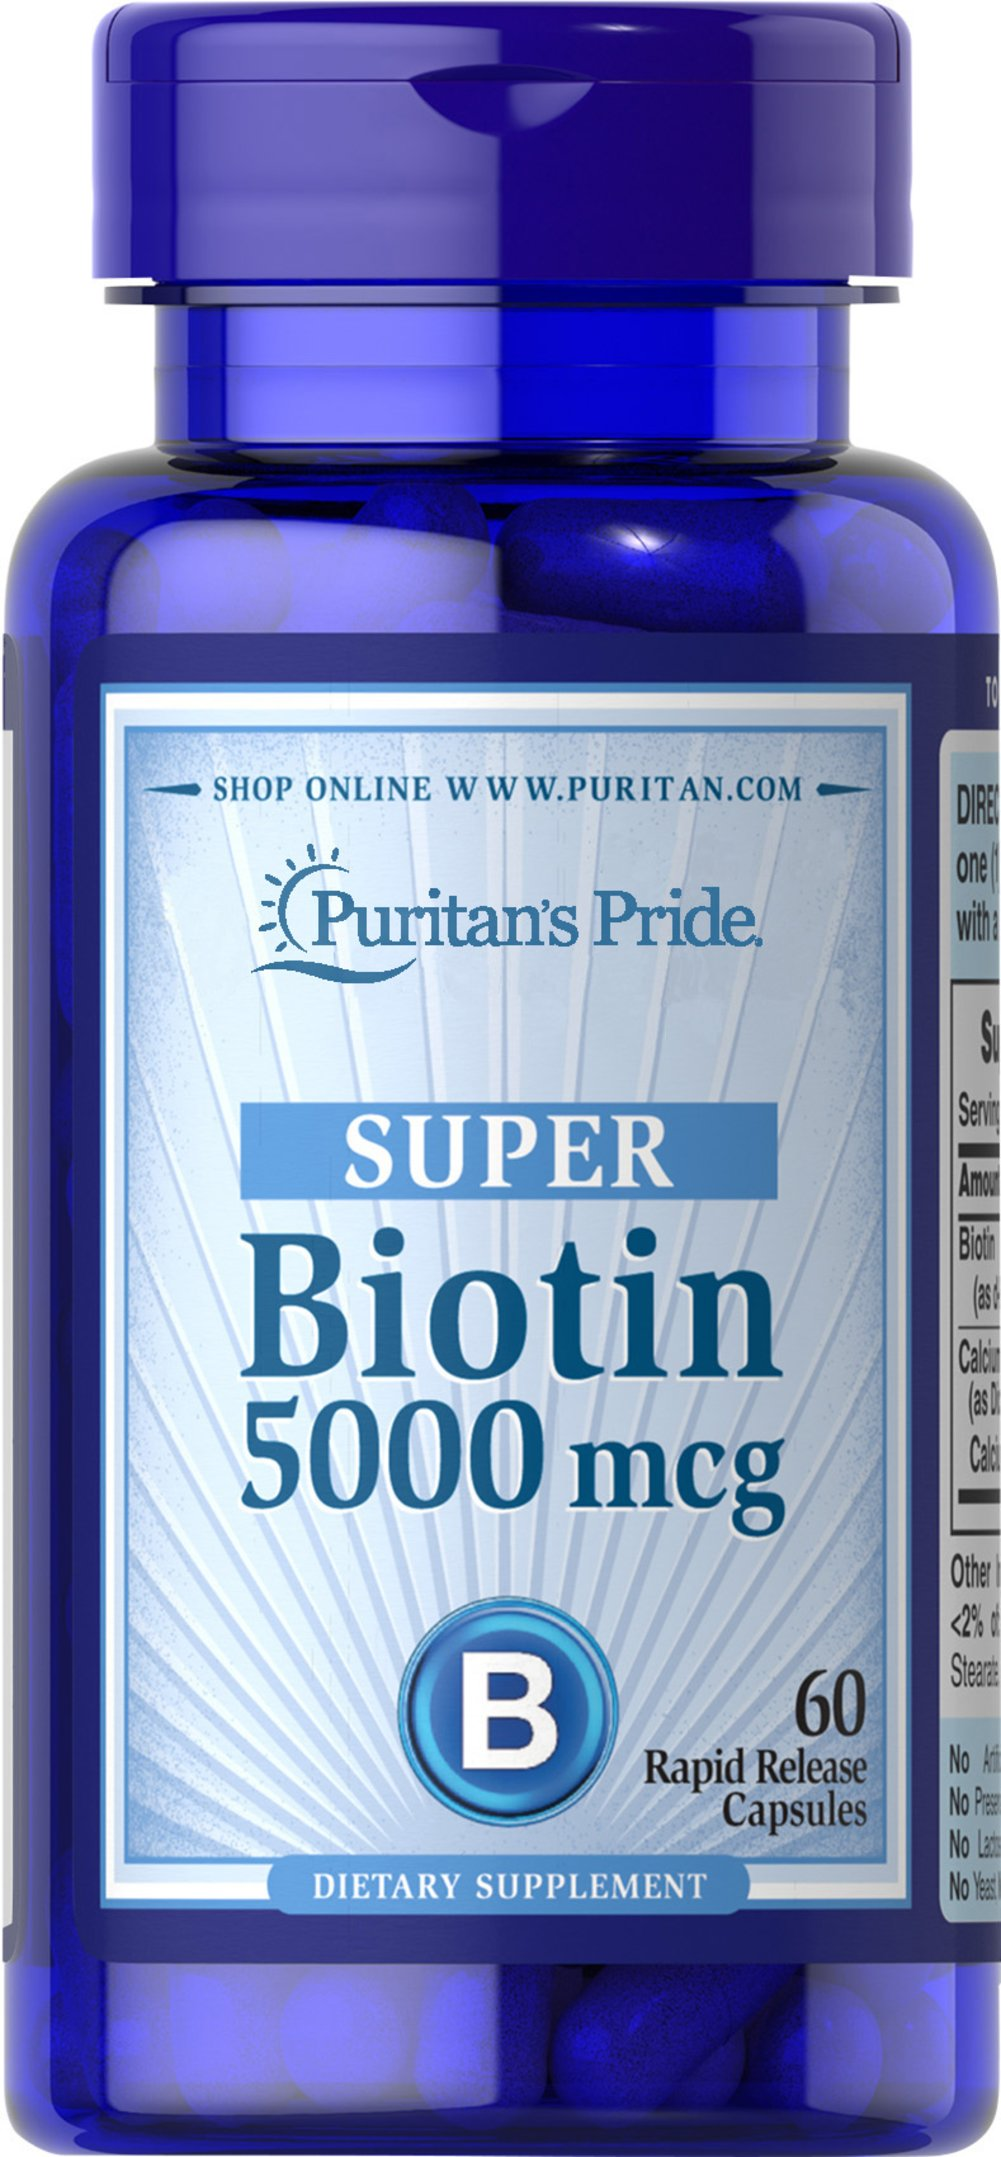 Biotin 5000 mcg <p>Supports Skin & Hair Health**</p><p>Found in foods such as oatmeal and soy, Biotin, a water-soluble B vitamin, assists in energy metabolism in cells.** Biotin helps to support healthy skin and hair.**</p> 60 Capsules 5000 mcg $8.99